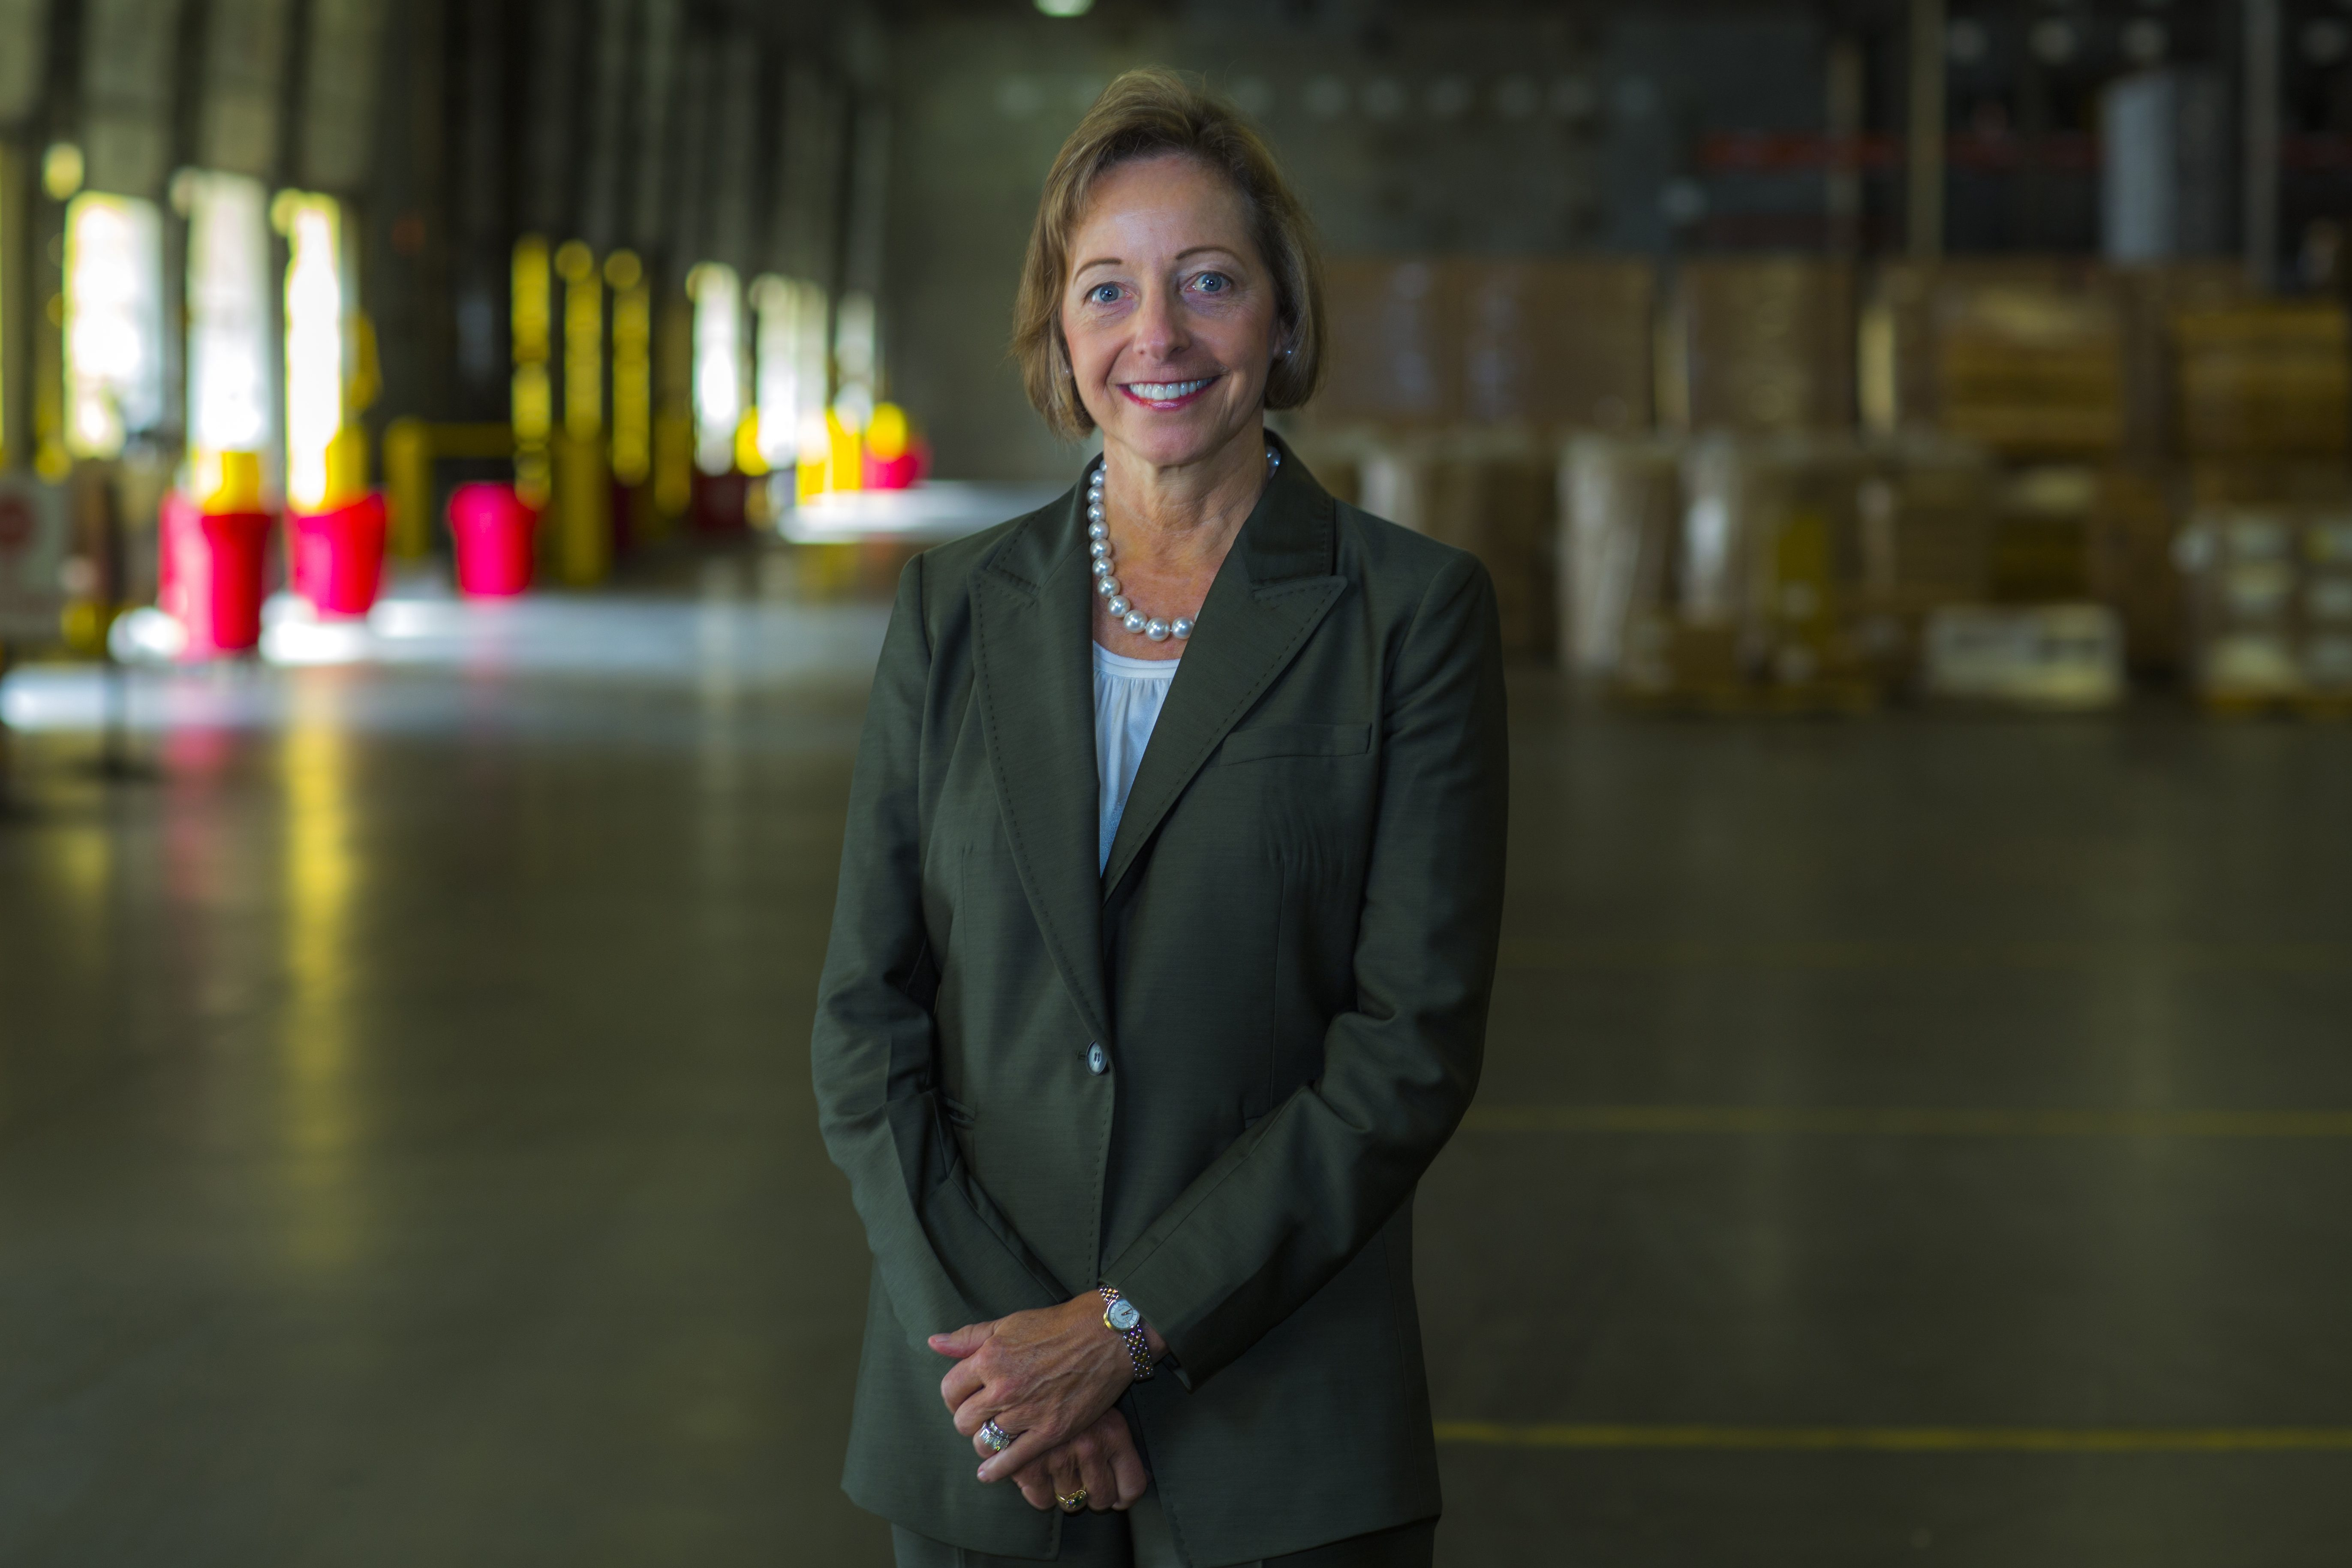 Mary Laschinger, CEO of Veritiv Corp, an Atlanta-based business-to-business corporation. (Leland Holder/Submitted Photo)